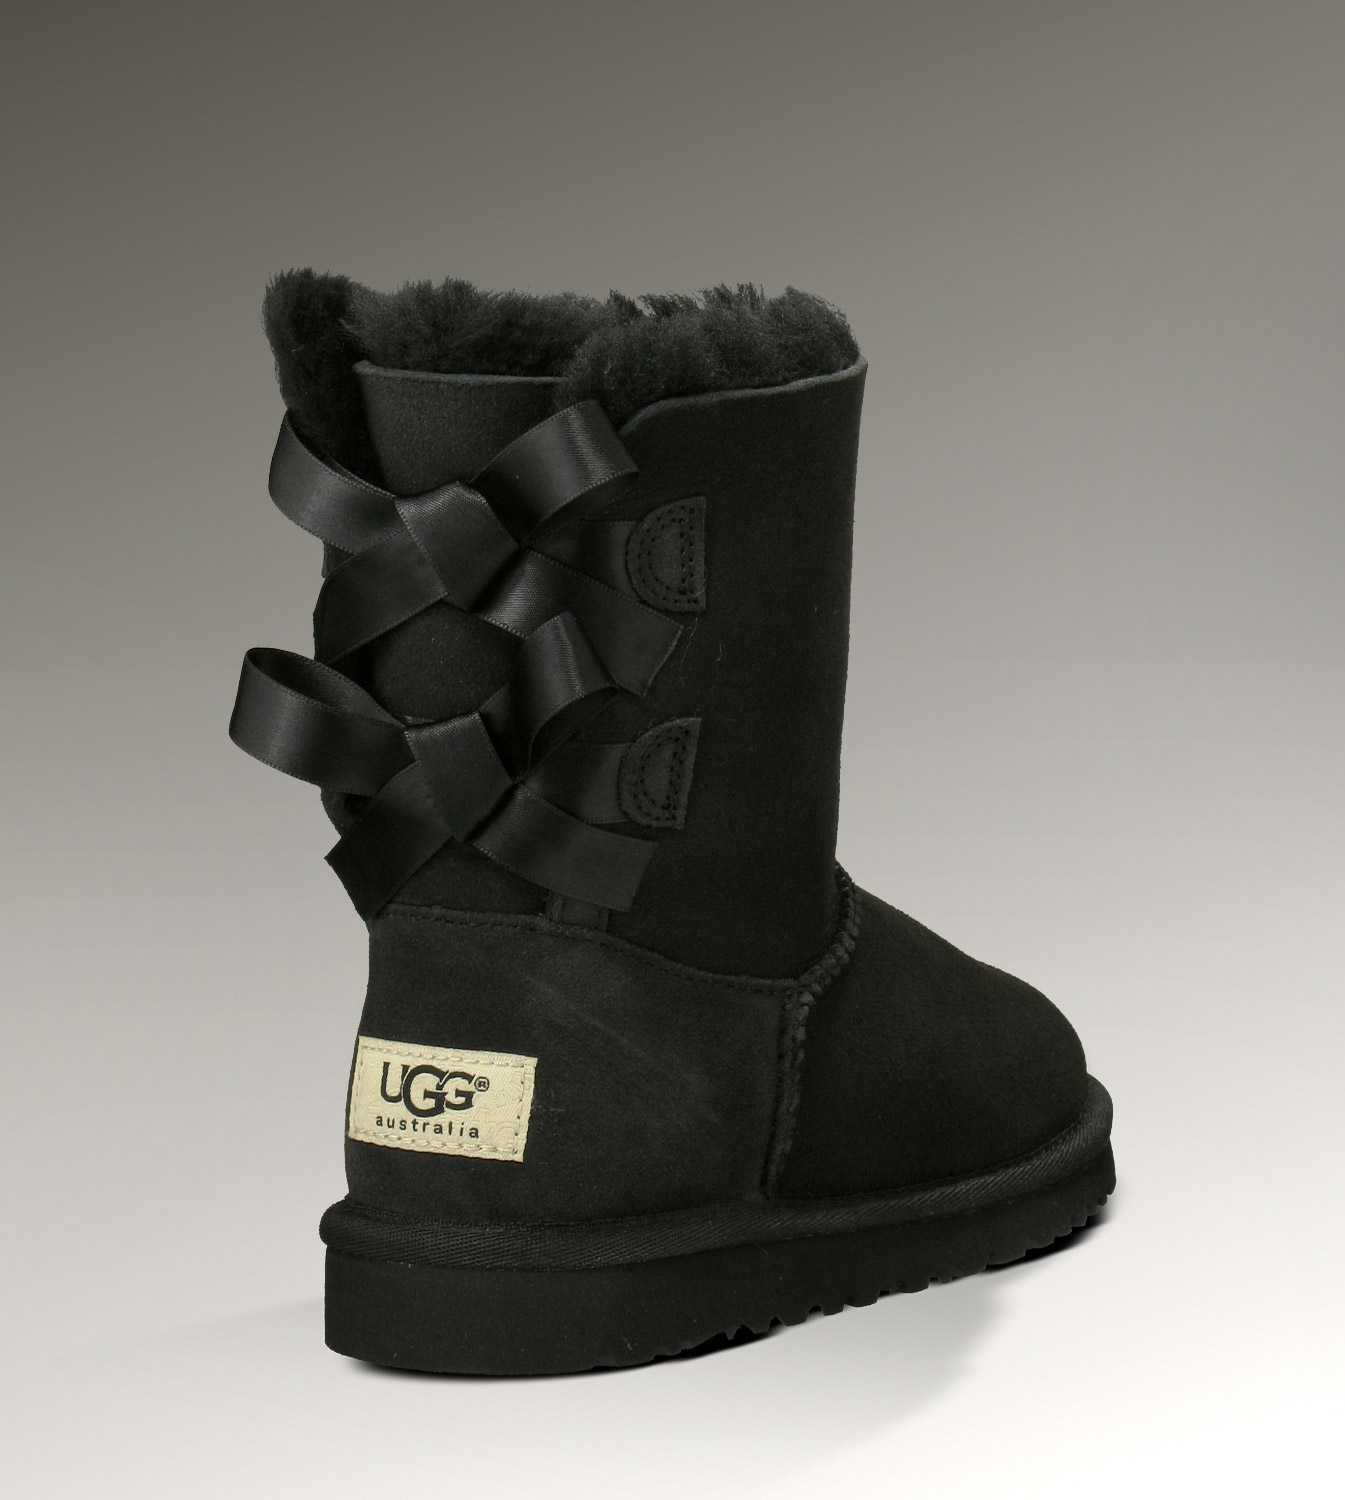 chaussure comme ugg